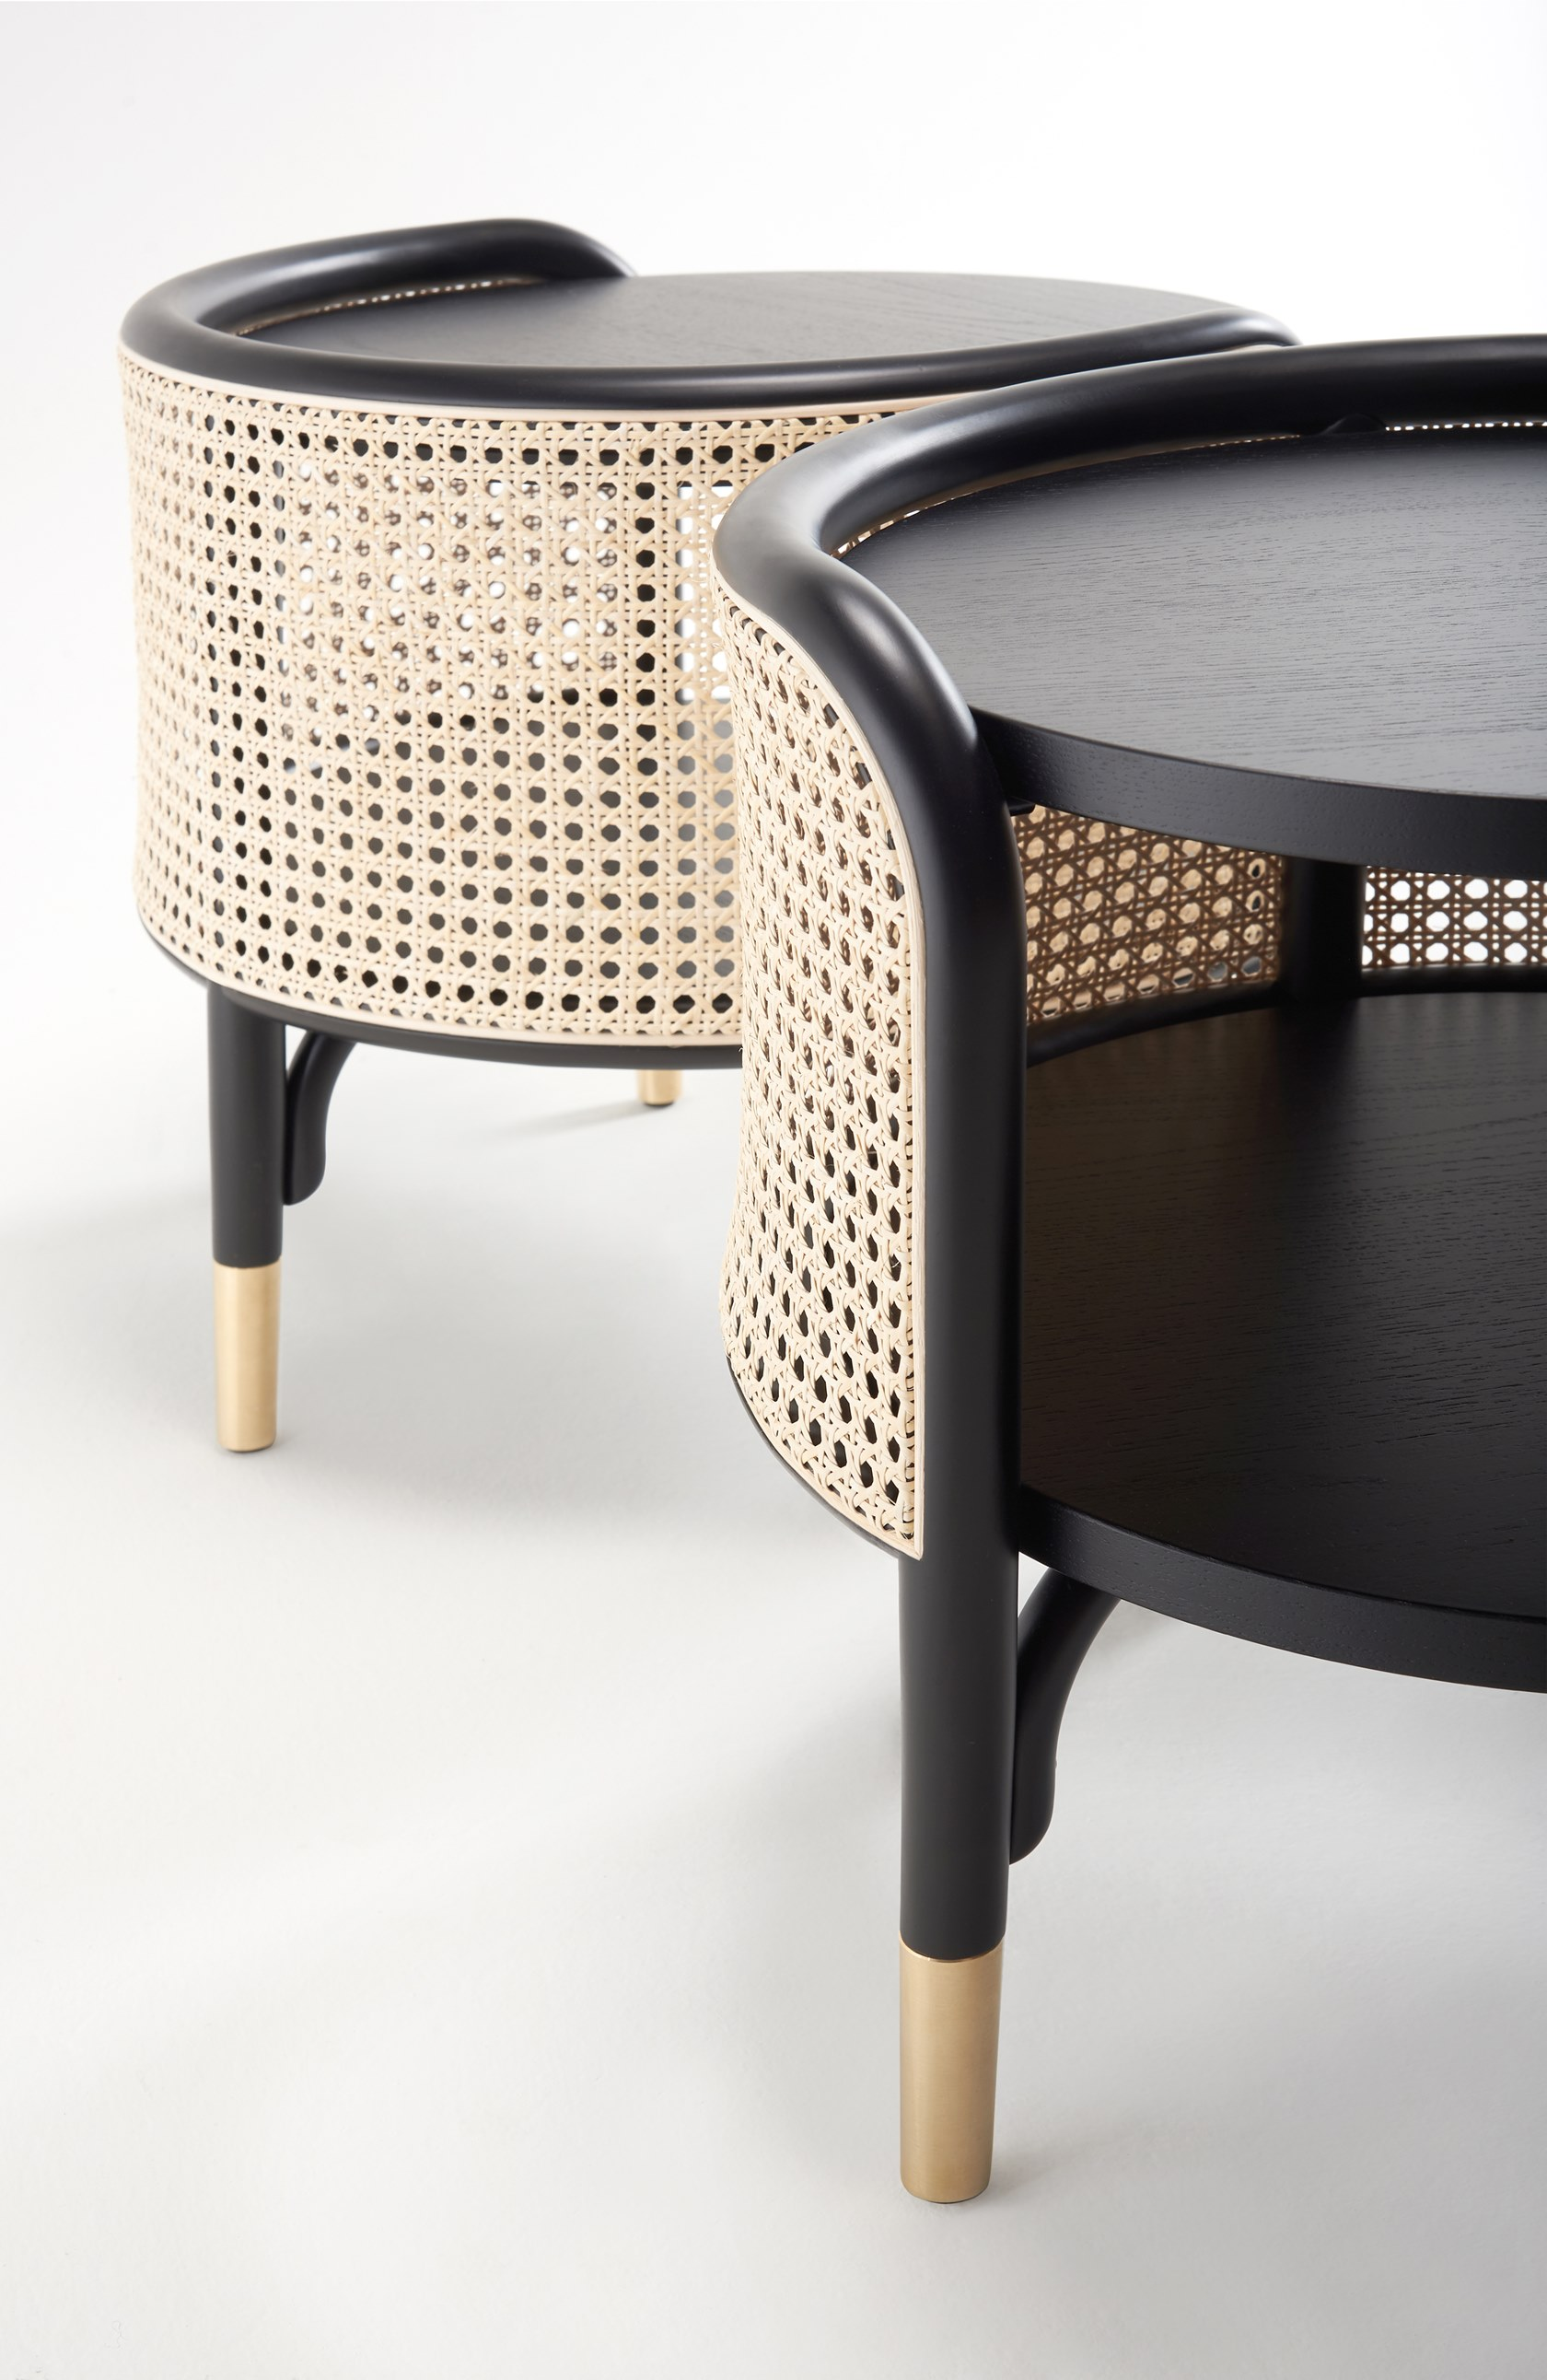 Mos Side Table - Mos is a side table with bent beech-wood frame and woven cane inserts. Open pore painted shelves in ash veneer. Brass feet.  MOS is the family of storage units designed by GamFratesi with console, bookcase and side table, which can also be used as a bedside table, that incorporates the style of the bench of the same name, another GamFratesi project. Ellipse shape and calibrated dimensions remain common features of the new elements, which fit into any environment, thanks to their light elegance, whether it be the living room or the sleeping area as in refined lounge spaces. The woven cane shell conceals the wooden tops, two for the coffee table, three for the console and four for the bookcase. The frame in natural stained or black lacquered bent beech wood is supported by brass feet. | Matter of Stuff